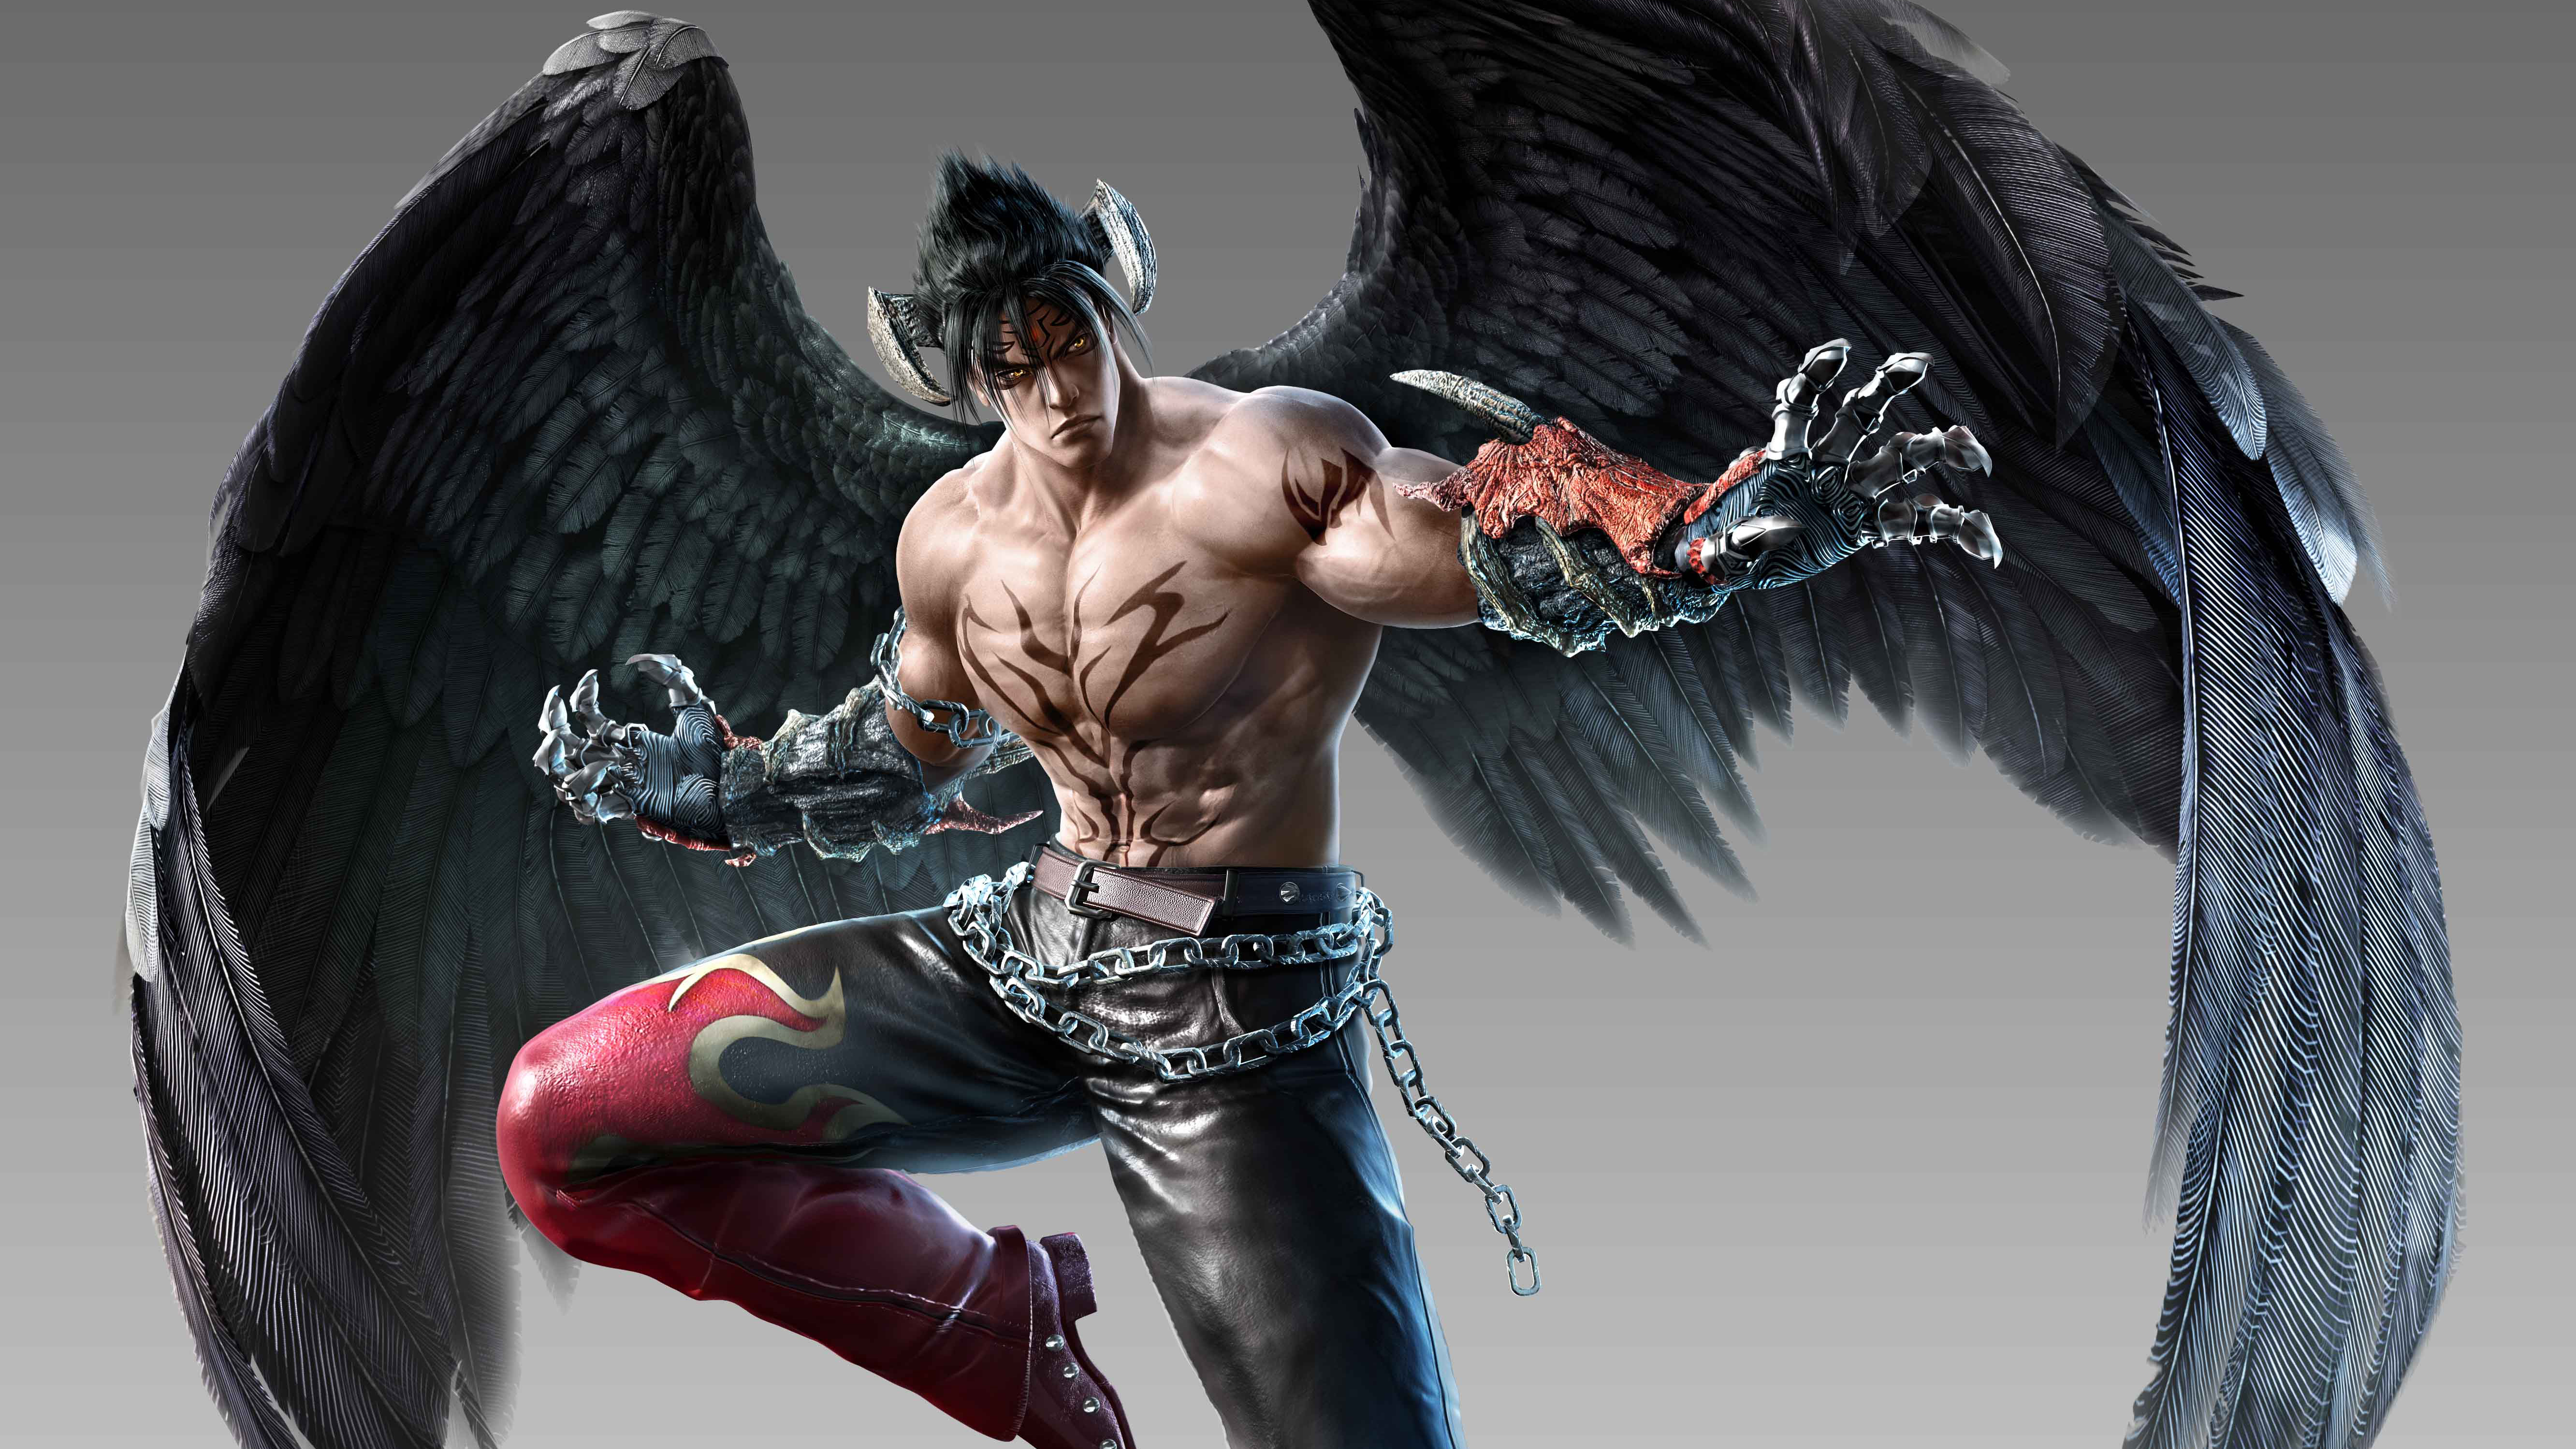 tekken wallpaper download